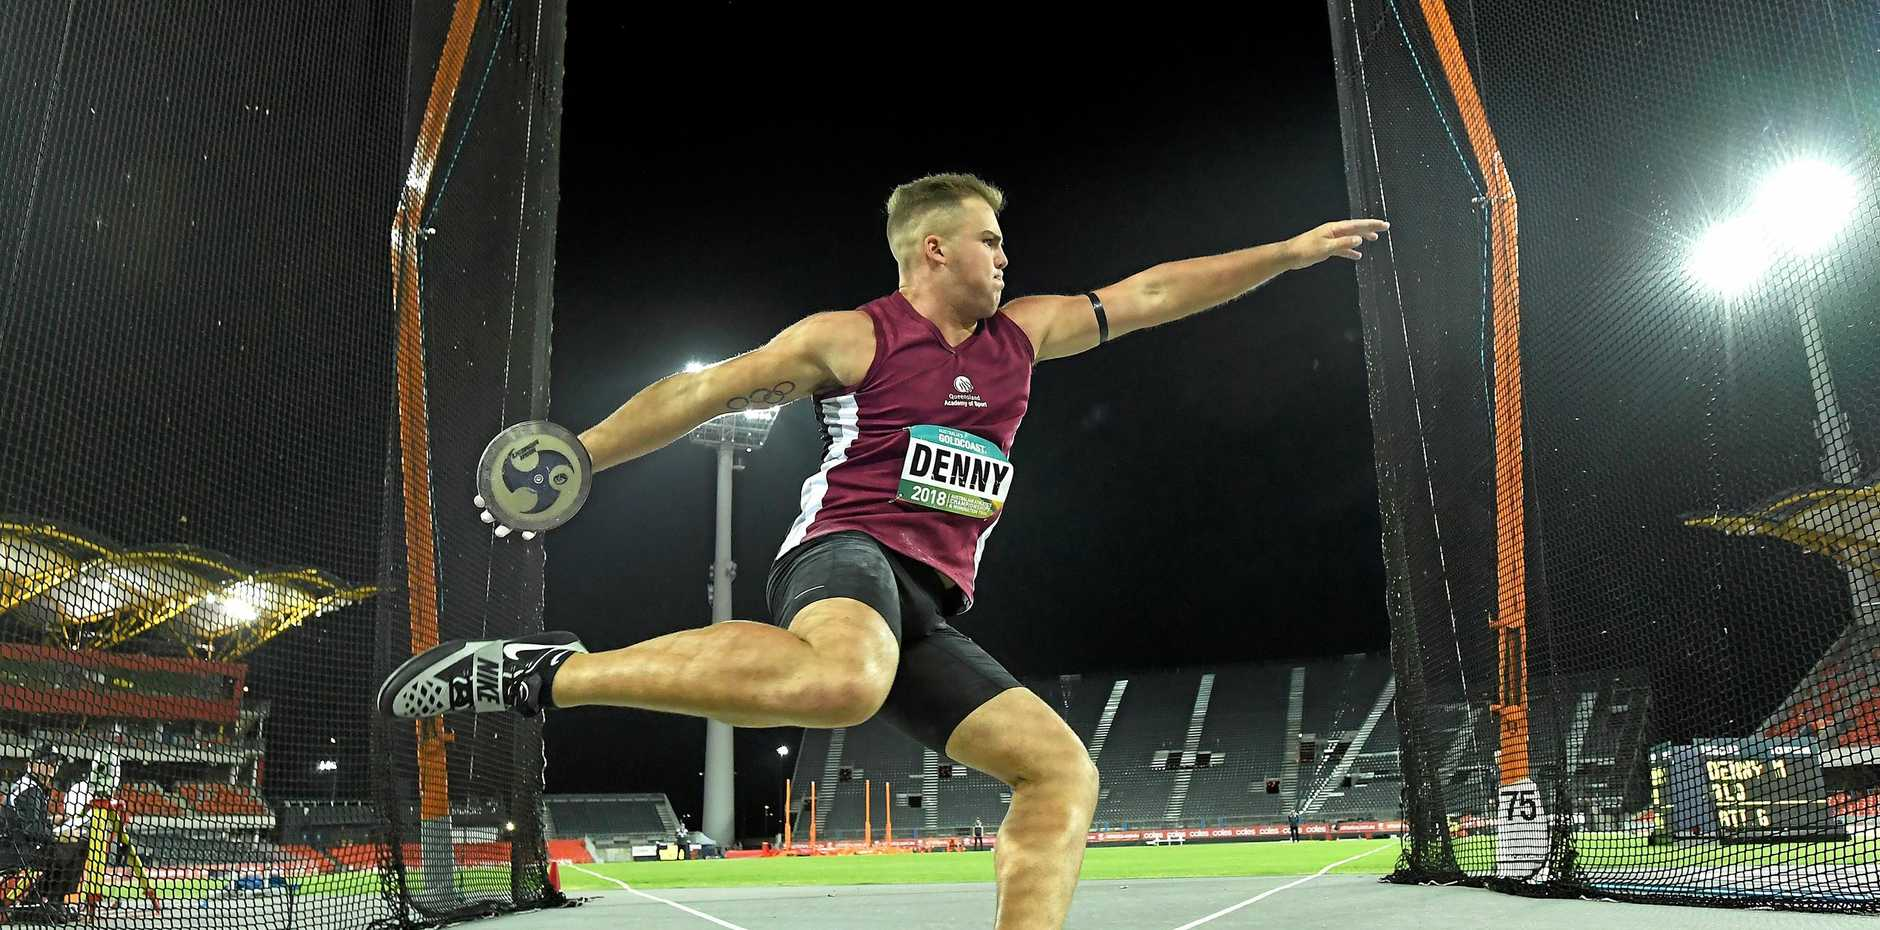 Gold medalist Matthew Denny of Queensland is seen during the Mens Discus final the Australian Athletics Championships competition at Carrara Stadium on the Gold Coast, Friday, February 16, 2018. (AAP Image/Dave Hunt) NO ARCHIVING, EDITORIAL USE ONLY